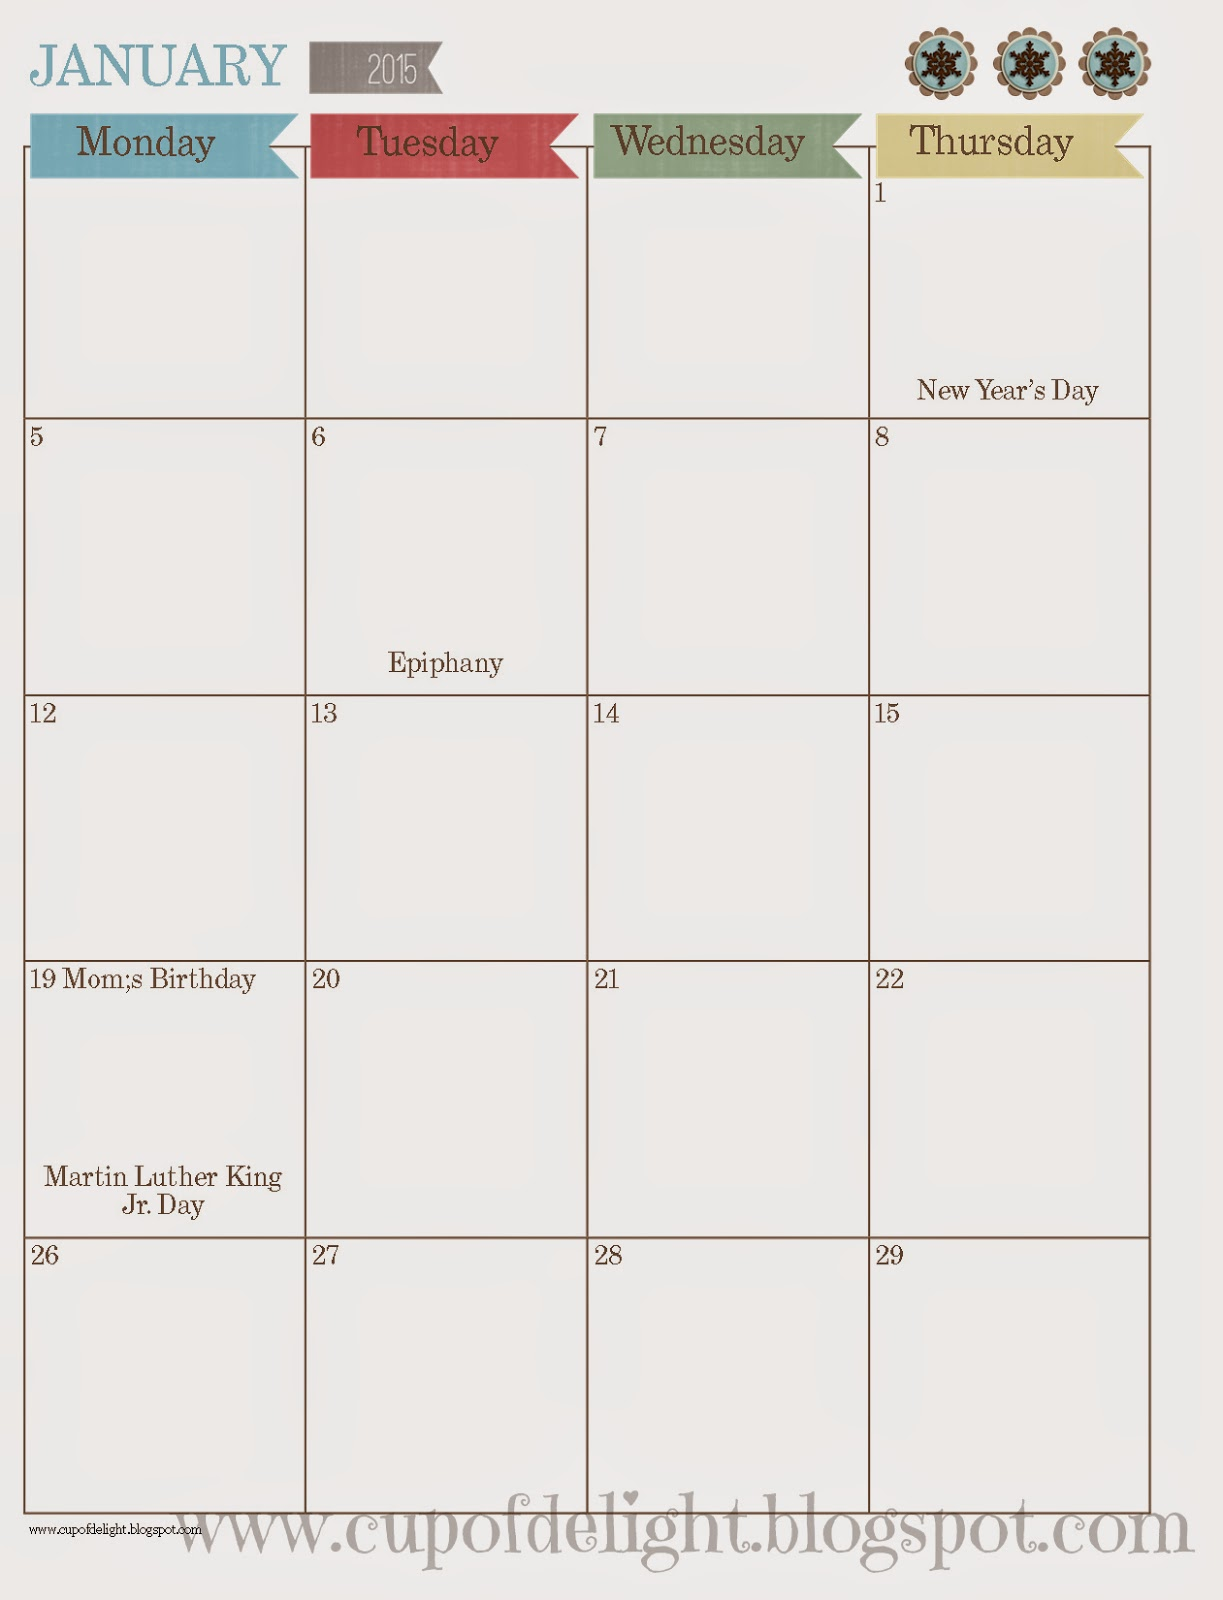 2015 Calendar and Planner Pages (Free!)